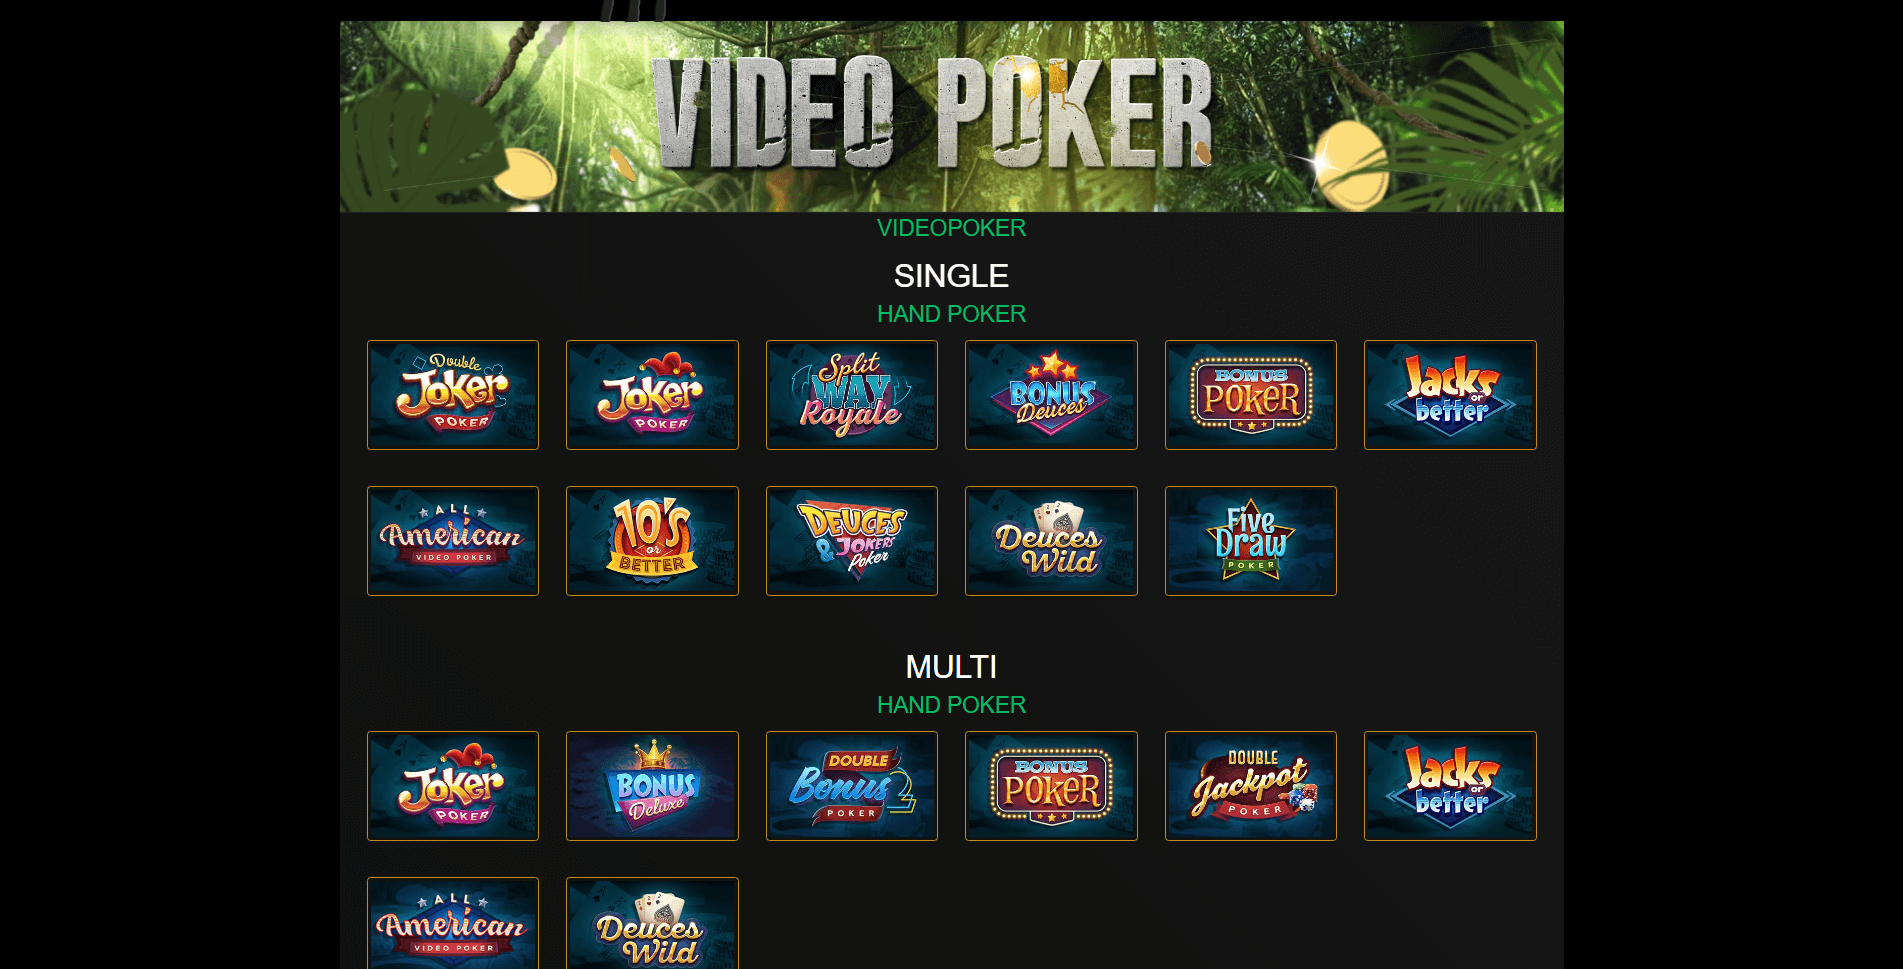 Play Video poker at Wild Casino